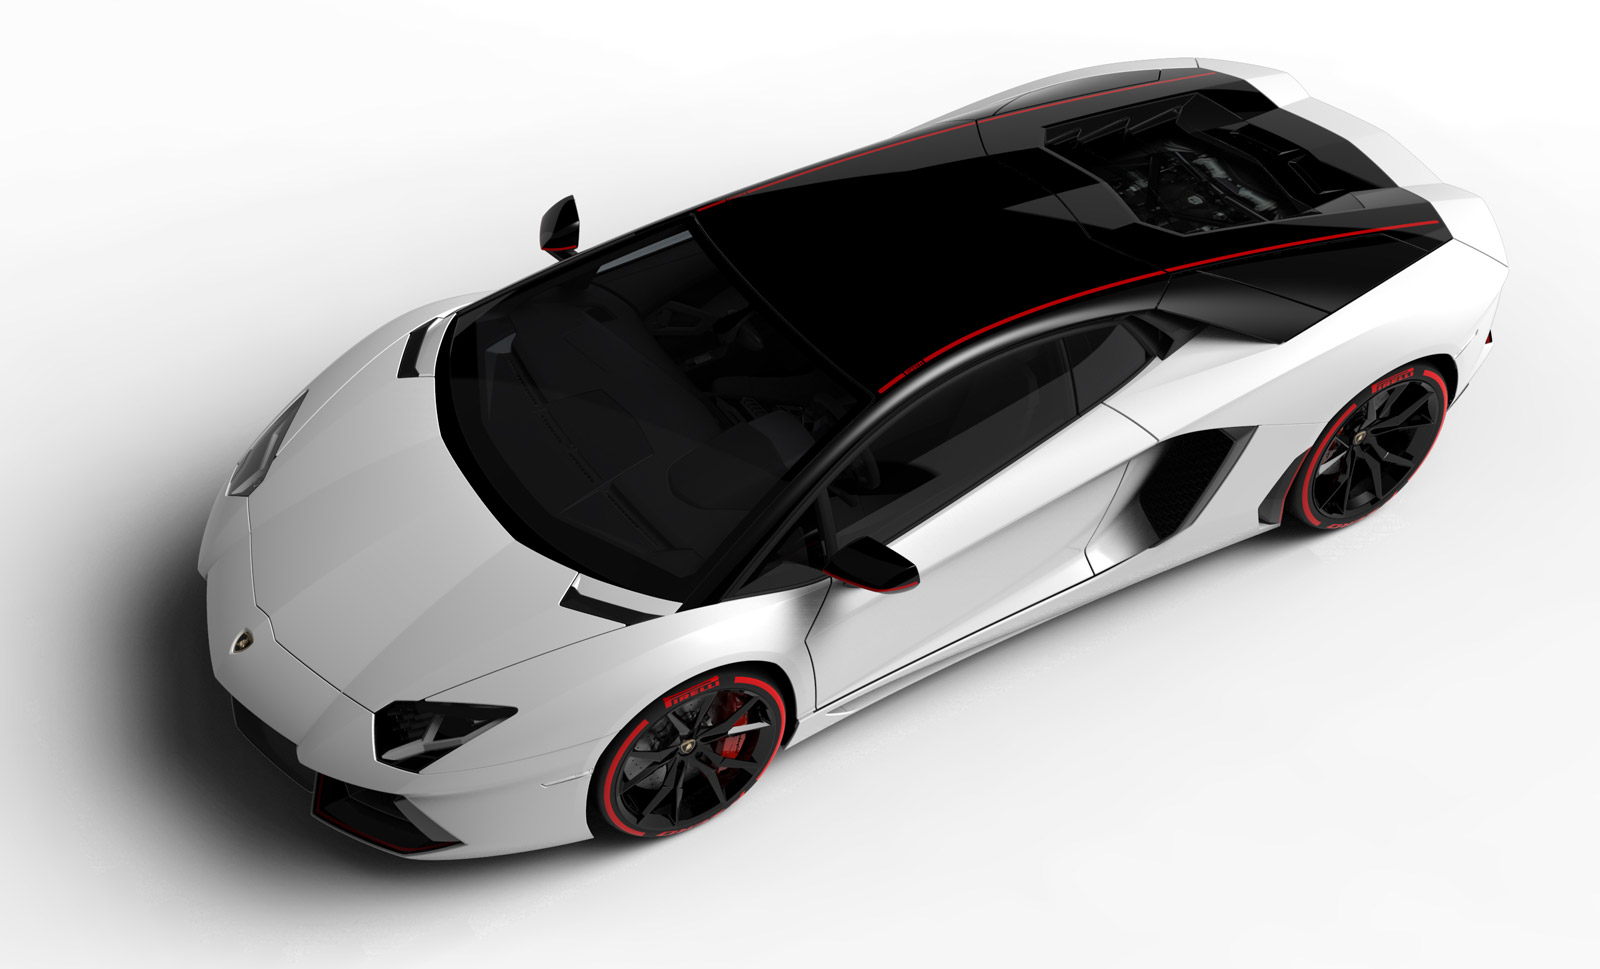 2015 Lamborghini Aventador Review, Ratings, Specs, Prices, and ...